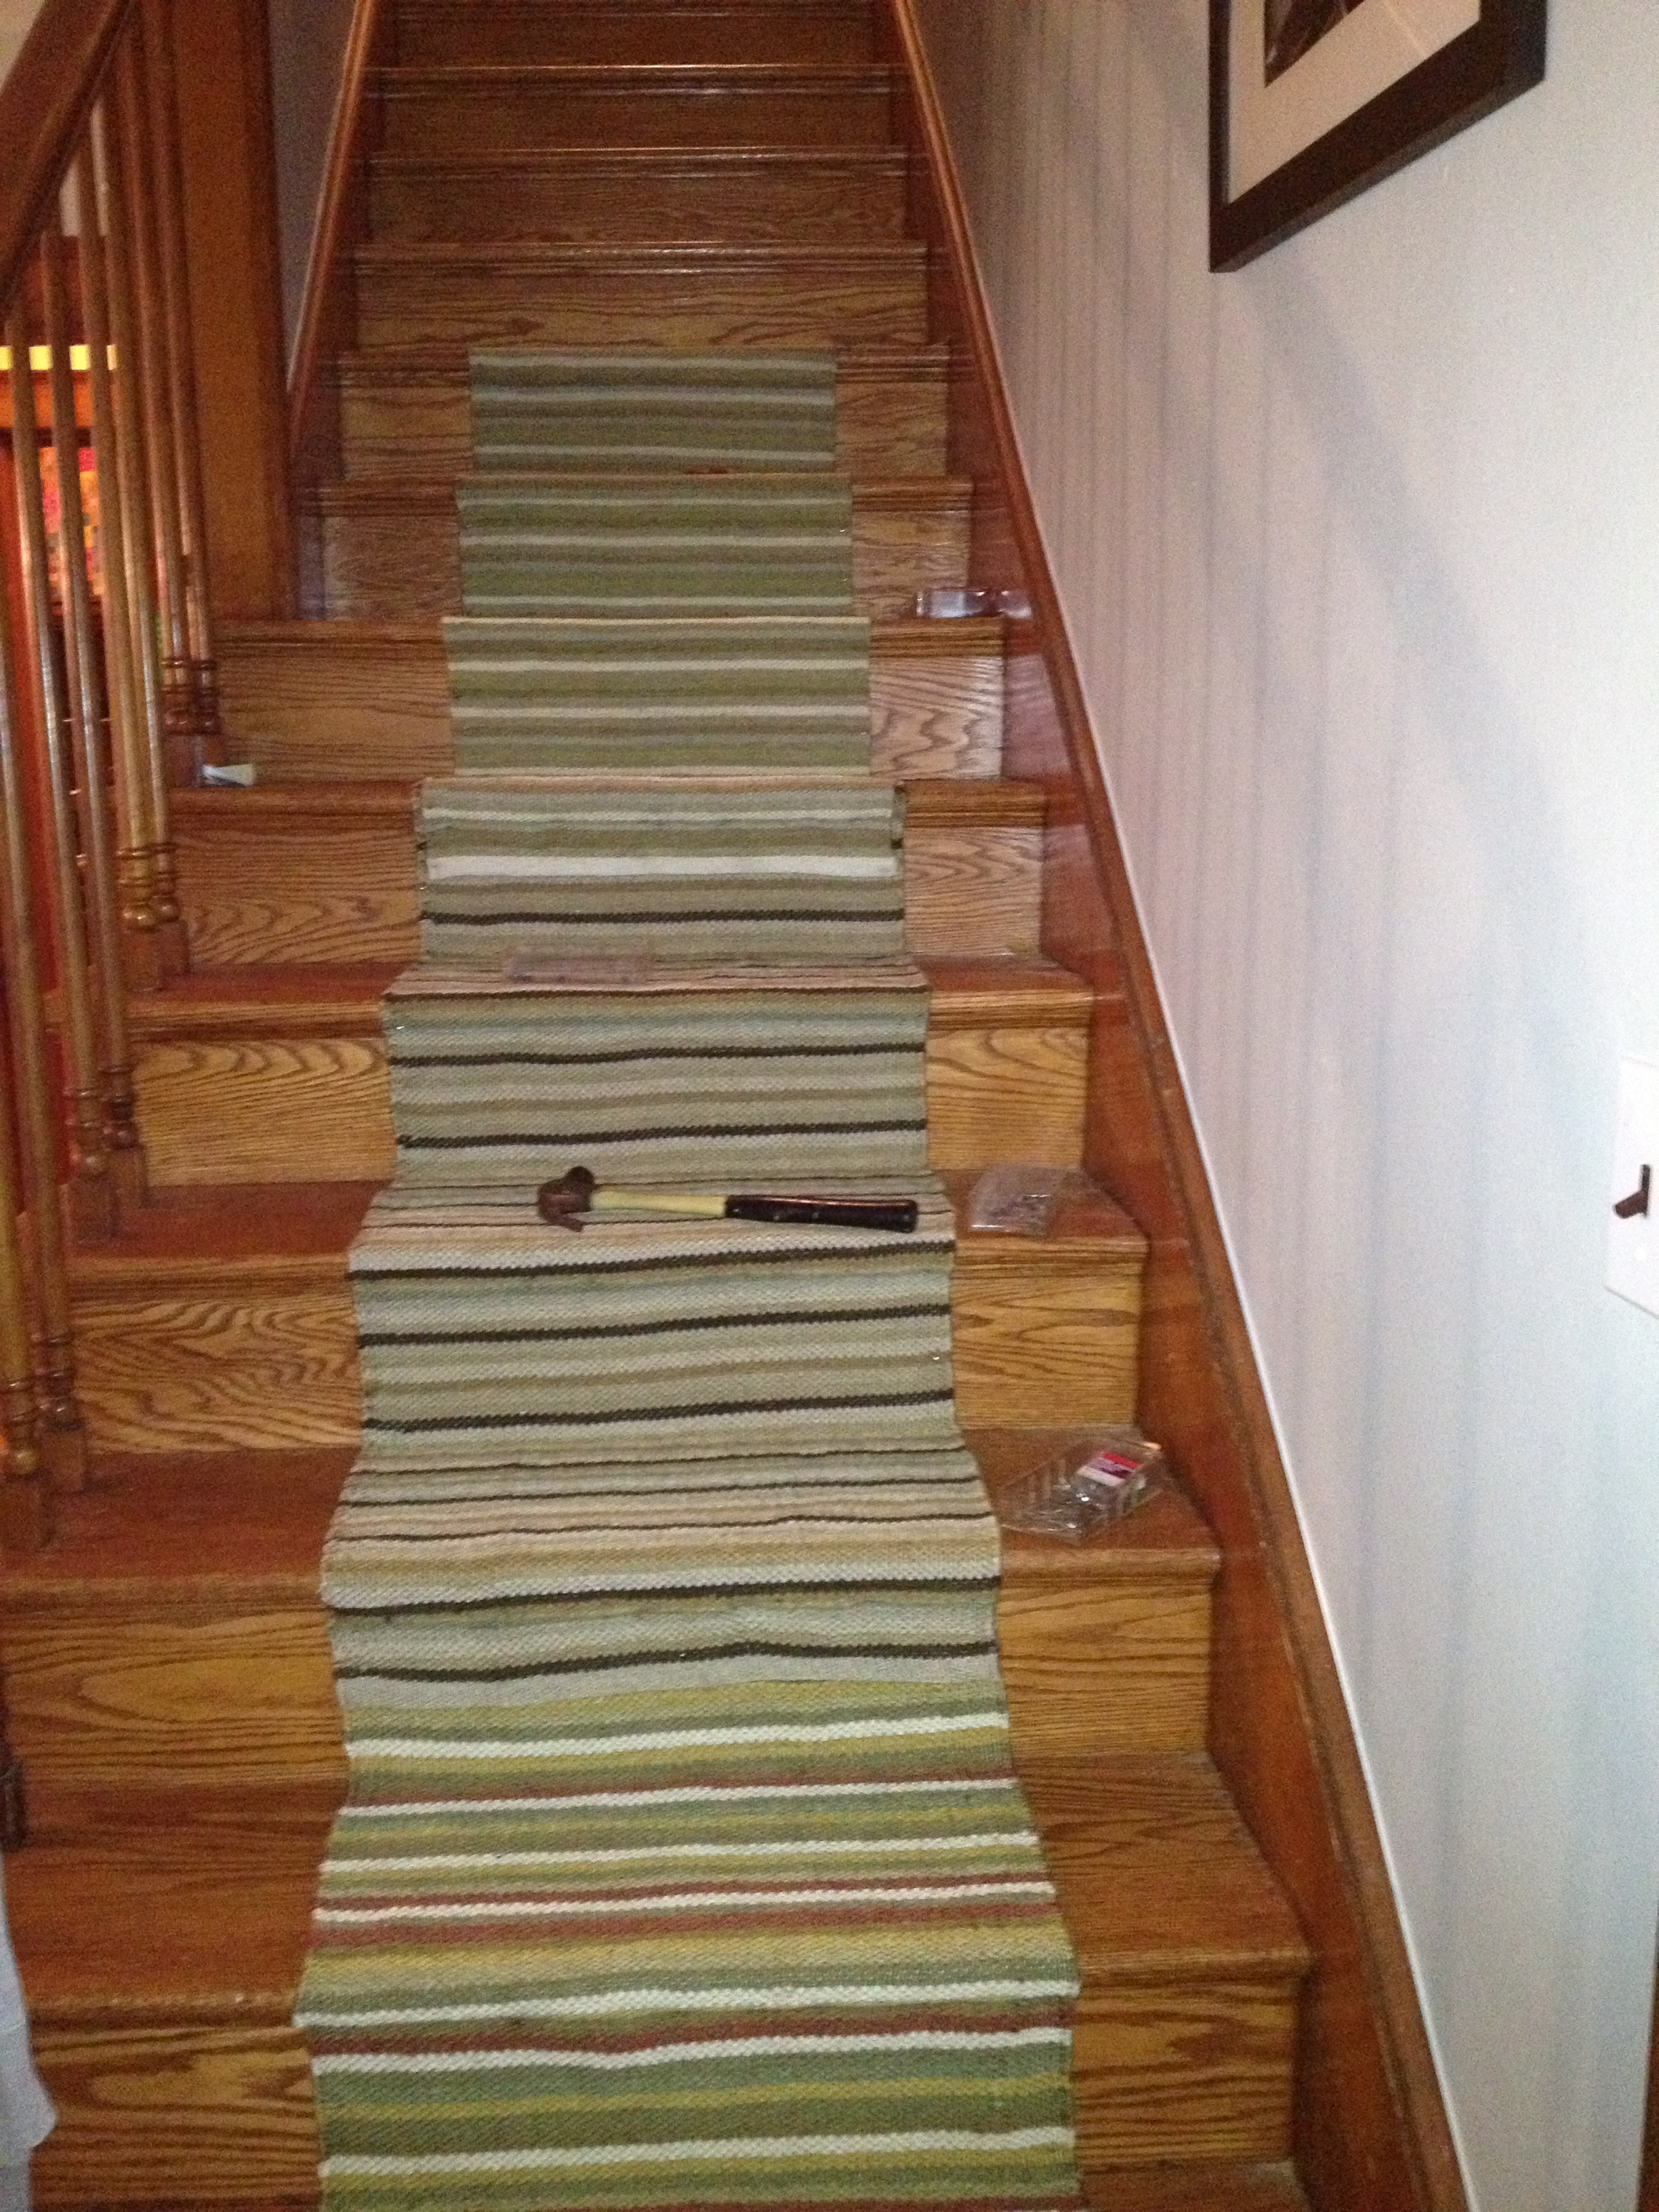 Stair Runner Fail.